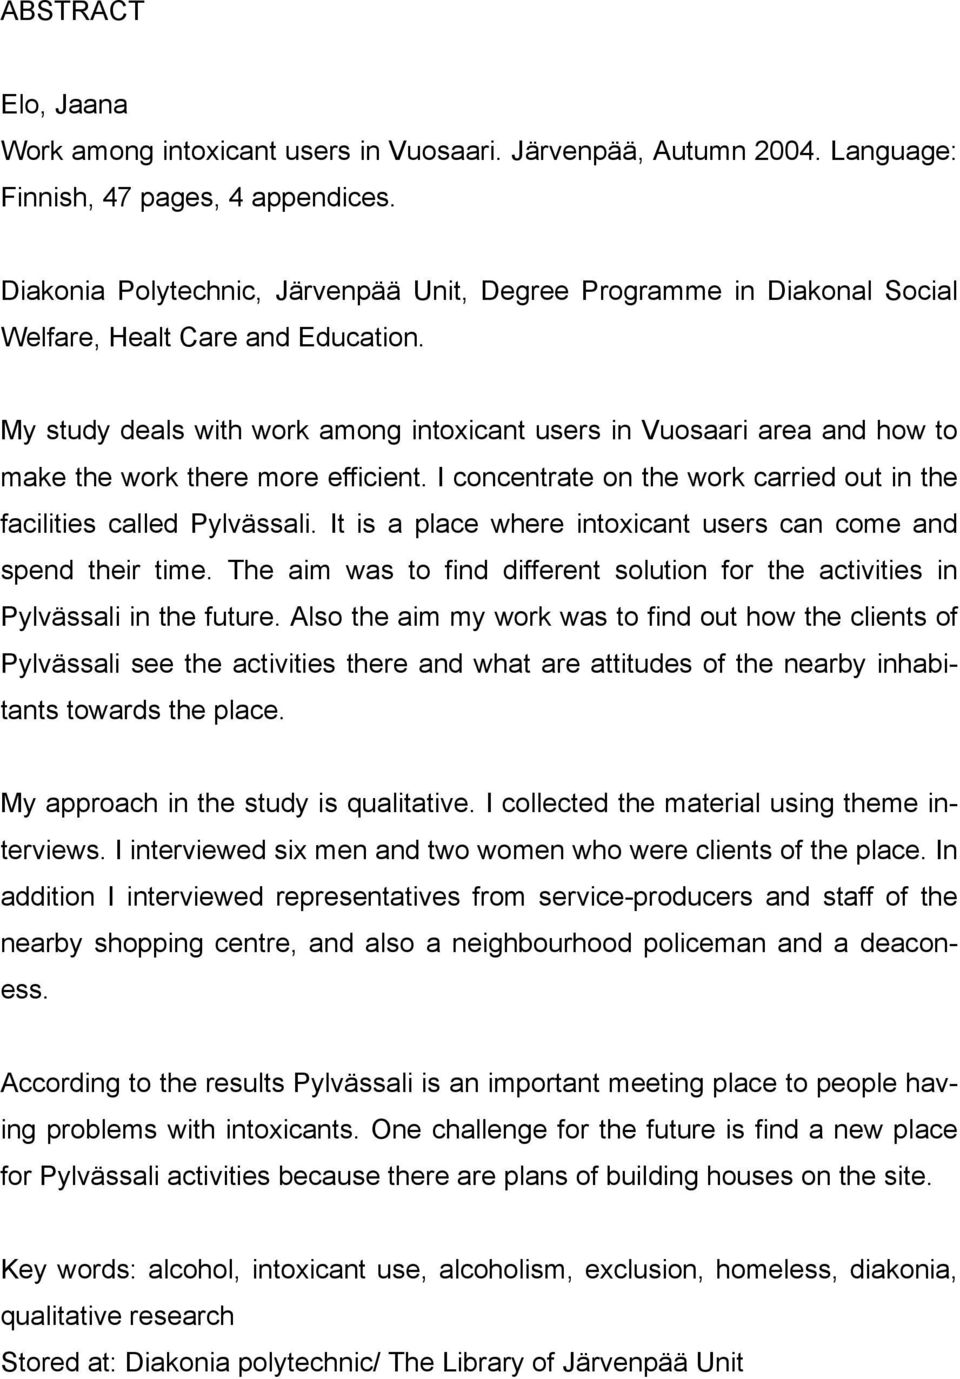 My study deals with work among intoxicant users in Vuosaari area and how to make the work there more efficient. I concentrate on the work carried out in the facilities called Pylvässali.